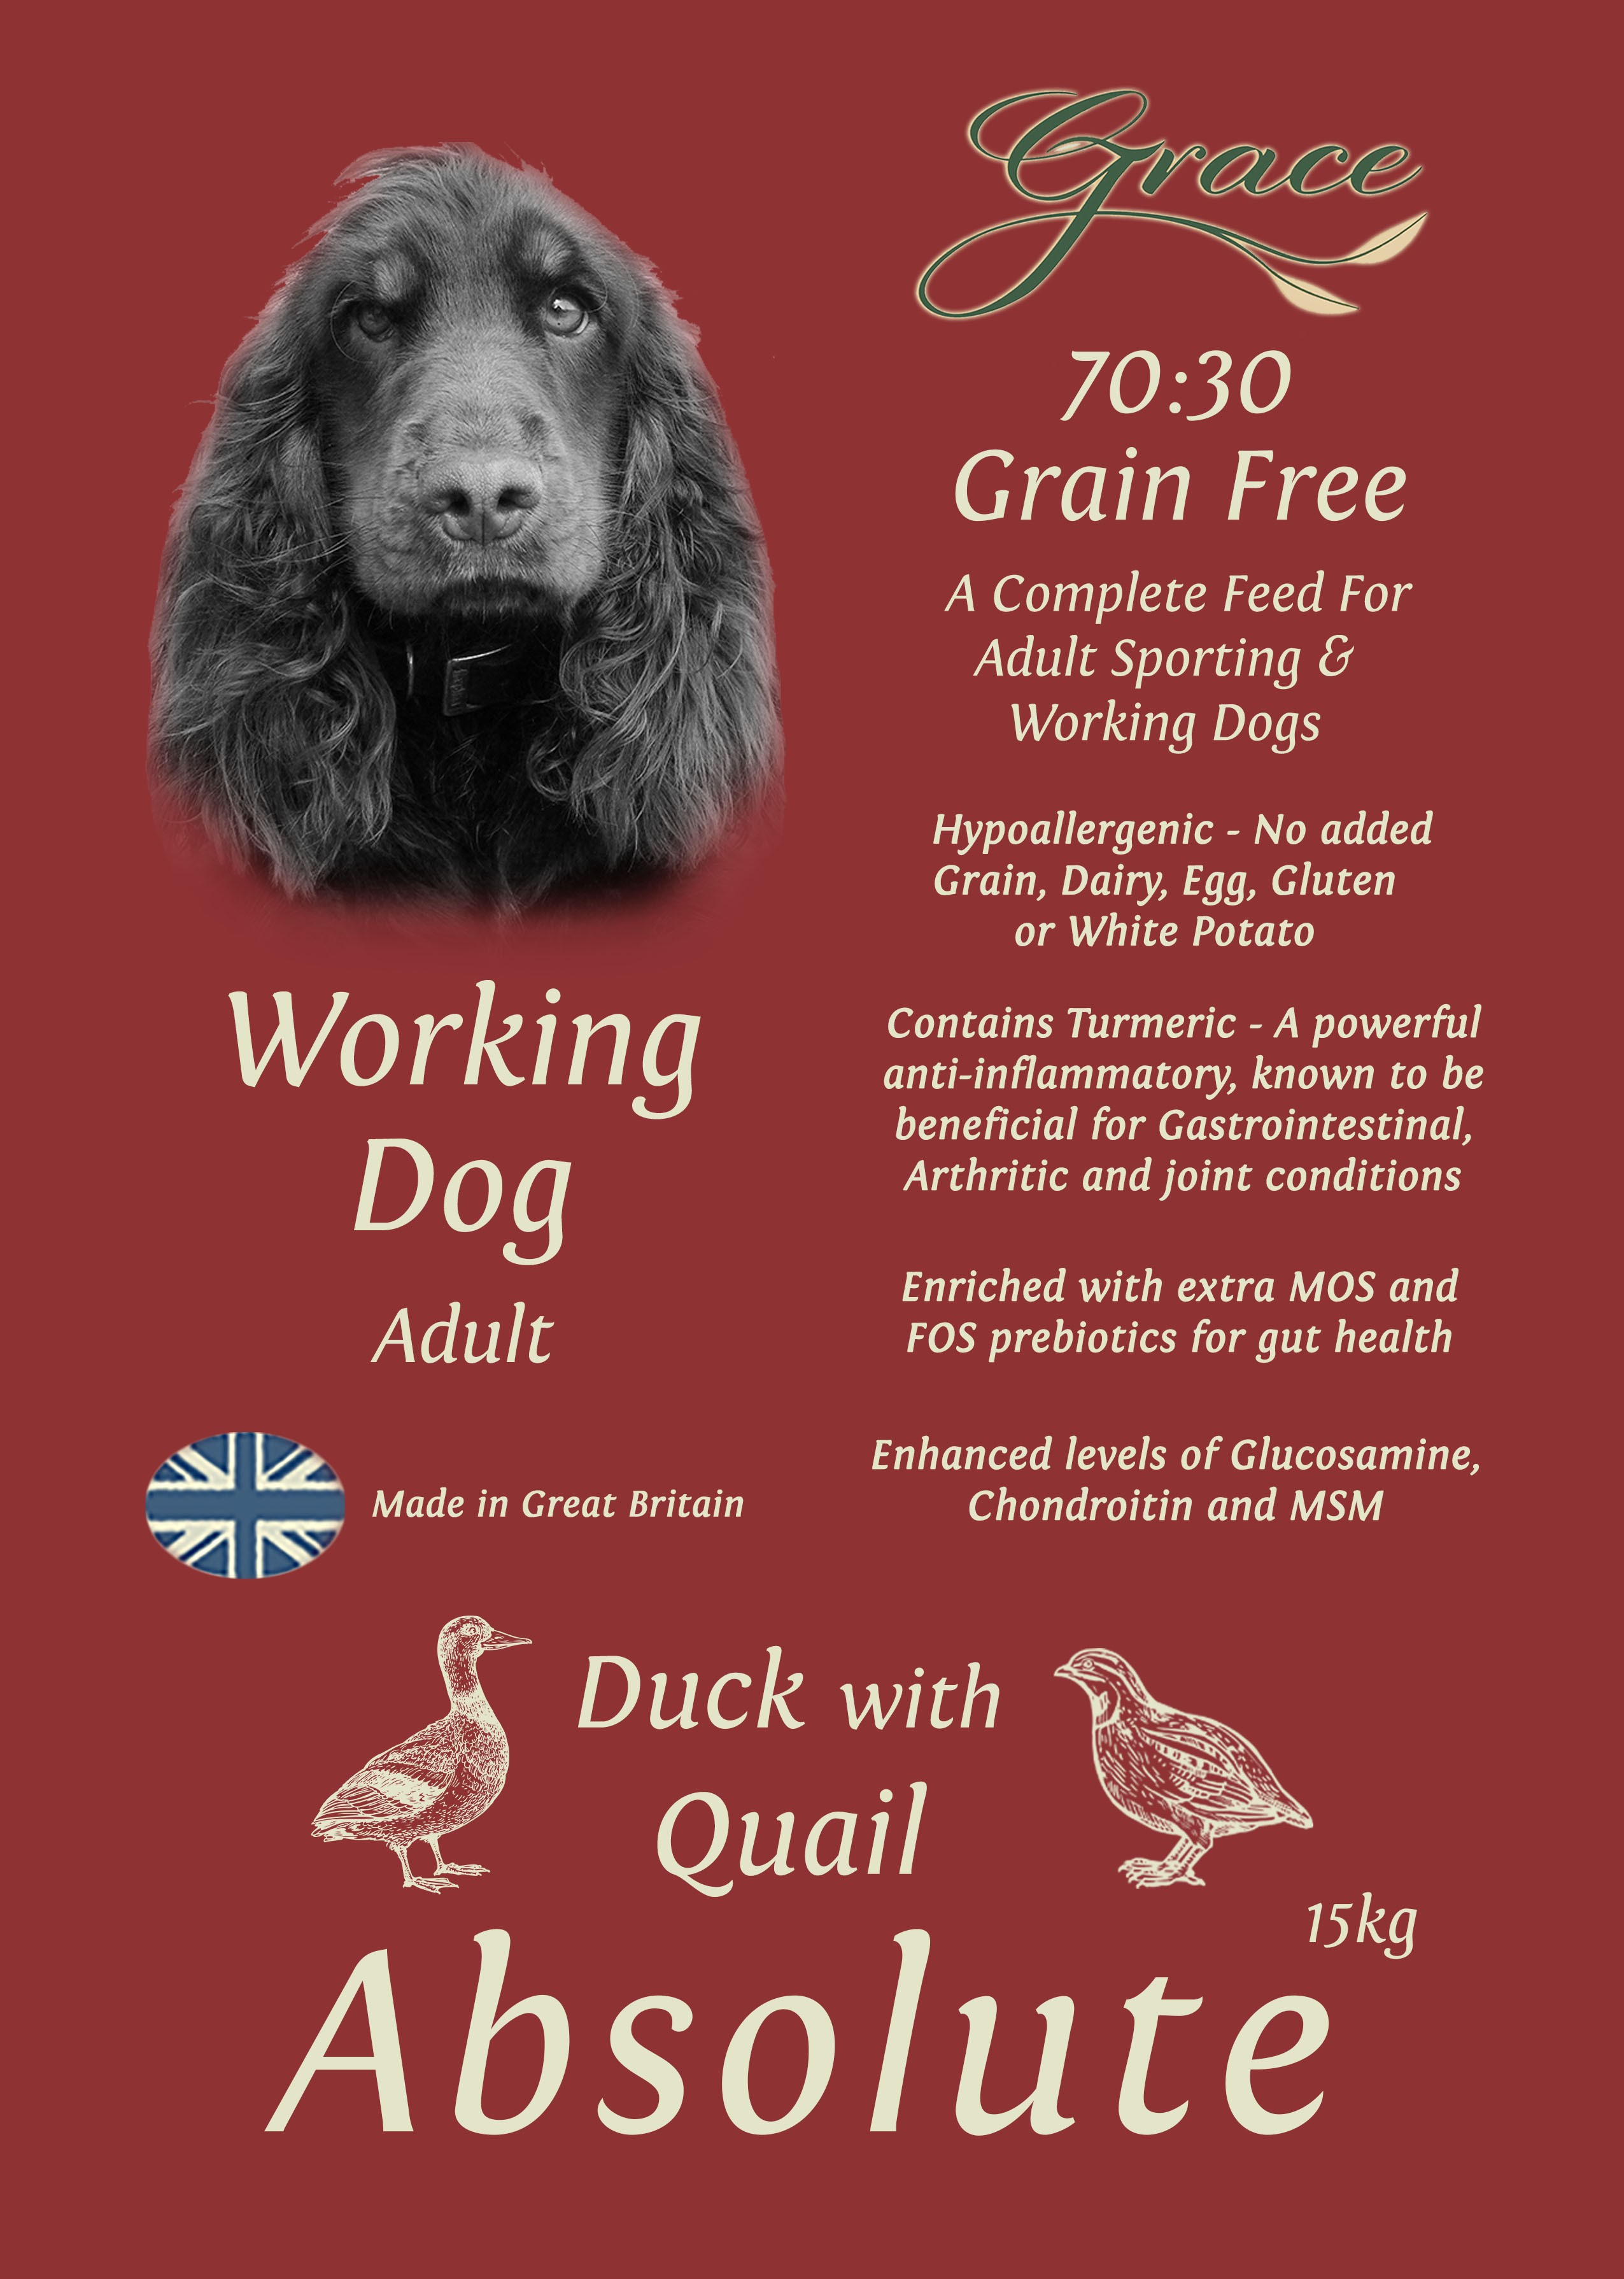 Grace 70/30 Absolute Duck with Quail 15kg Twin Pack